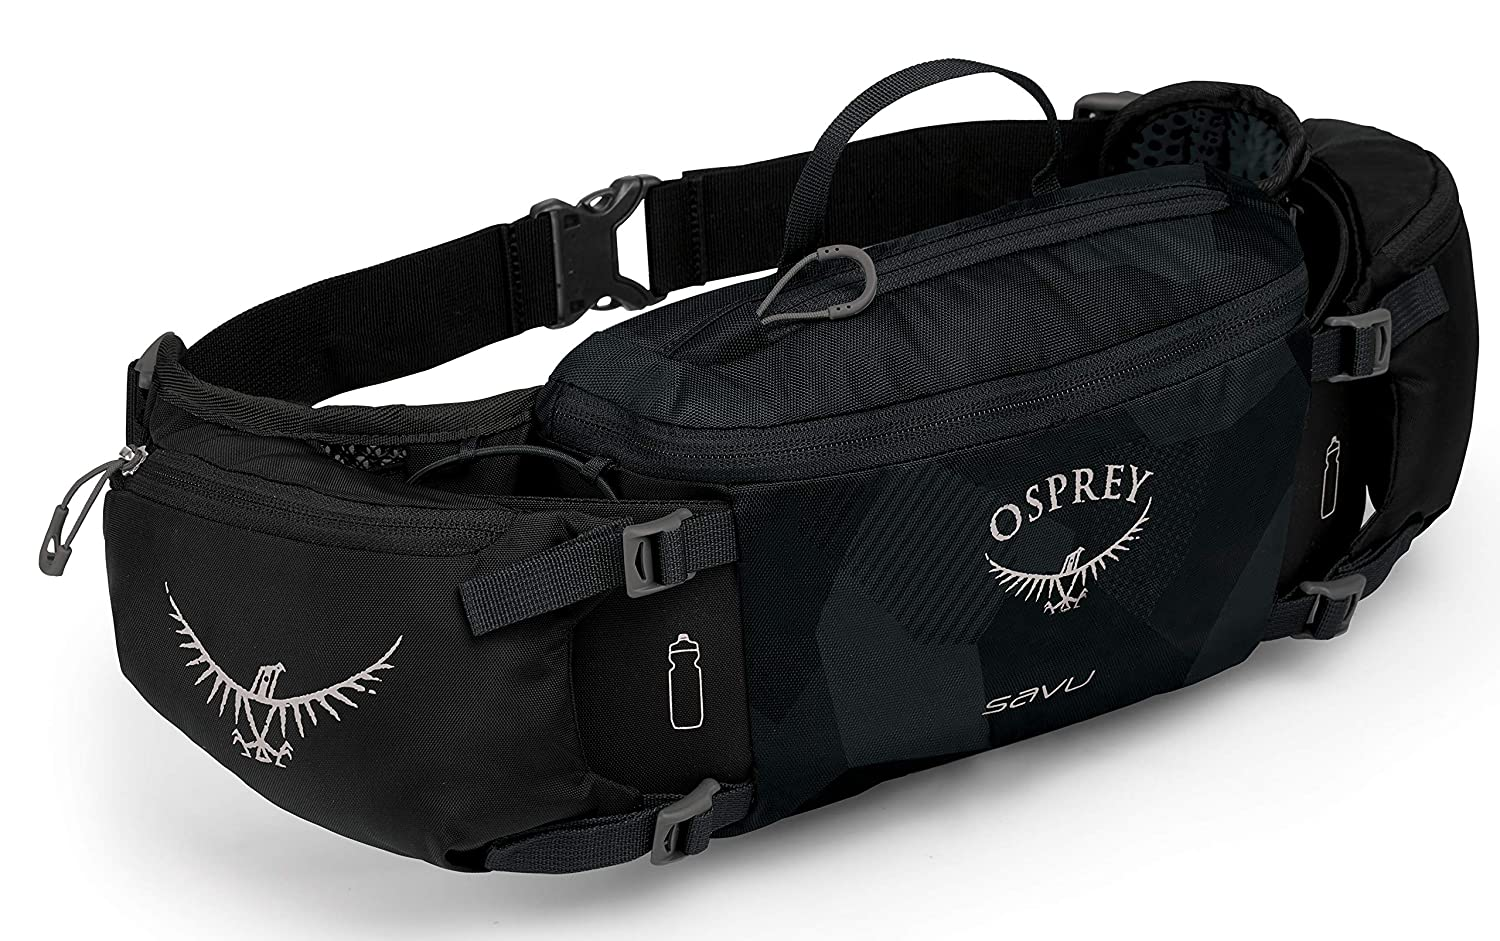 Osprey Packs Savu Lumbar Hydration Pack